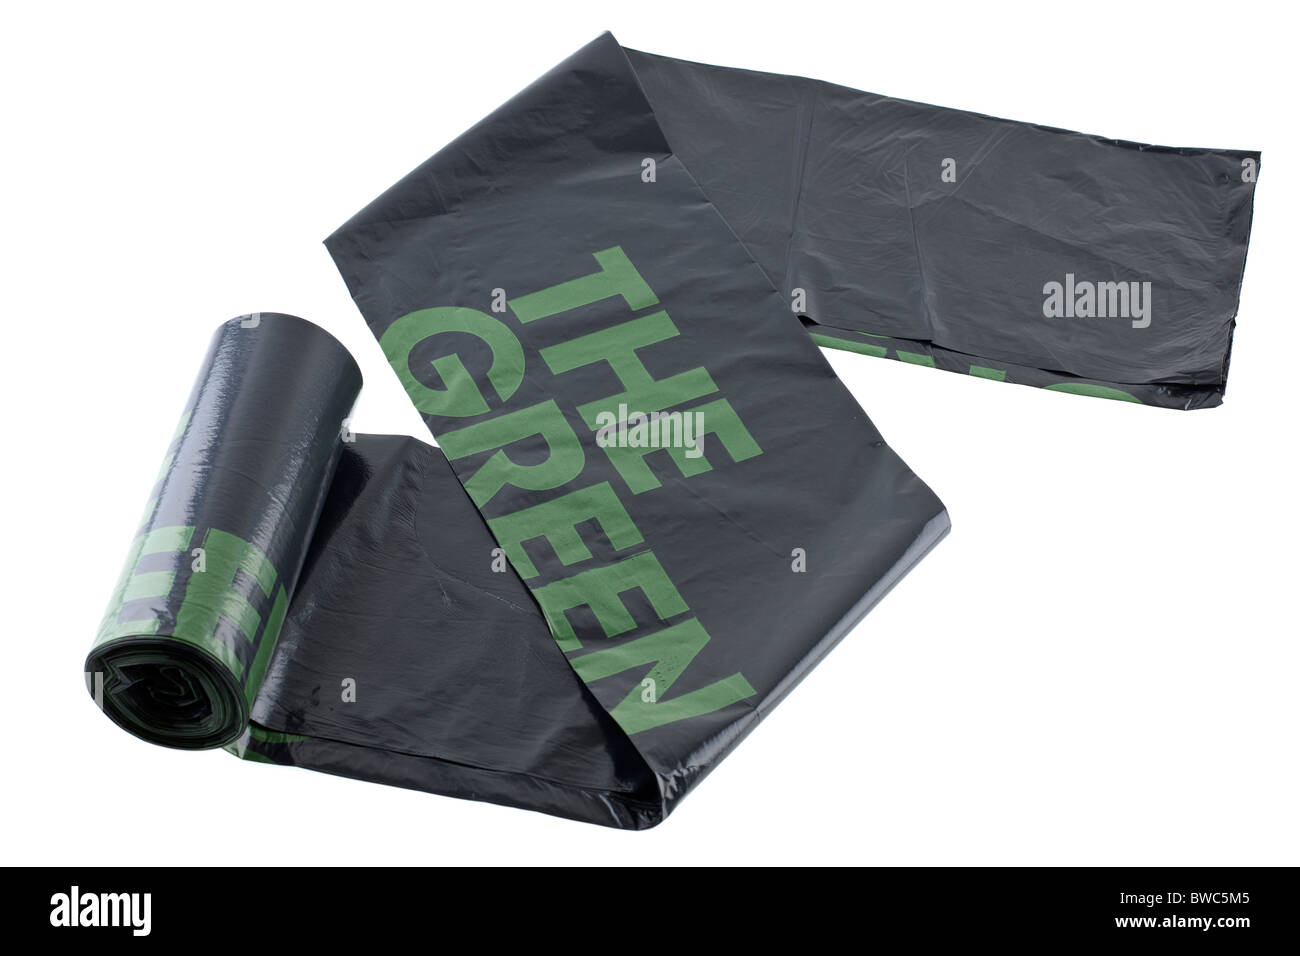 Roll of black and green refuse sacks - Stock Image